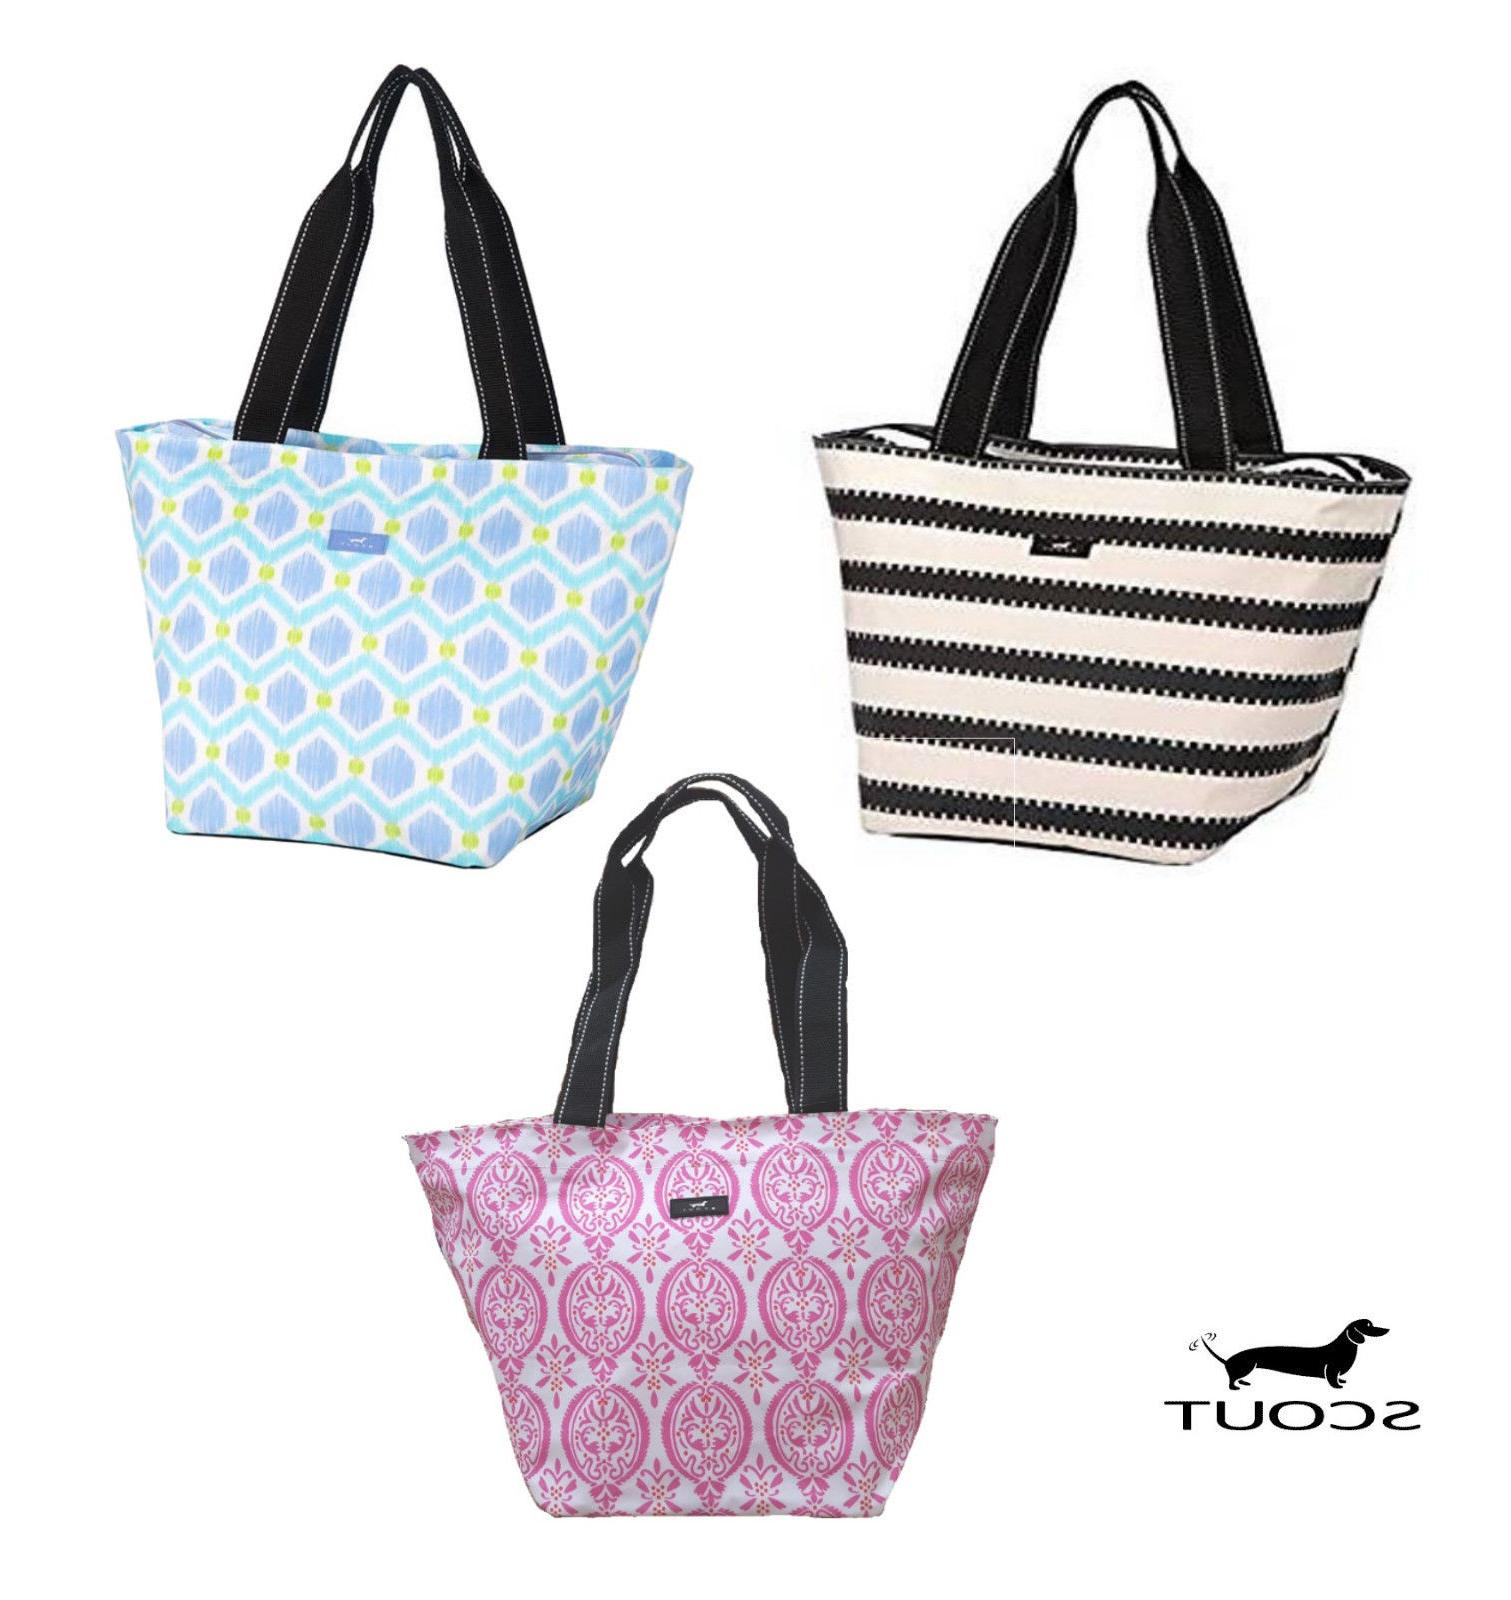 SCOUT Bags Cotton Tote Bag